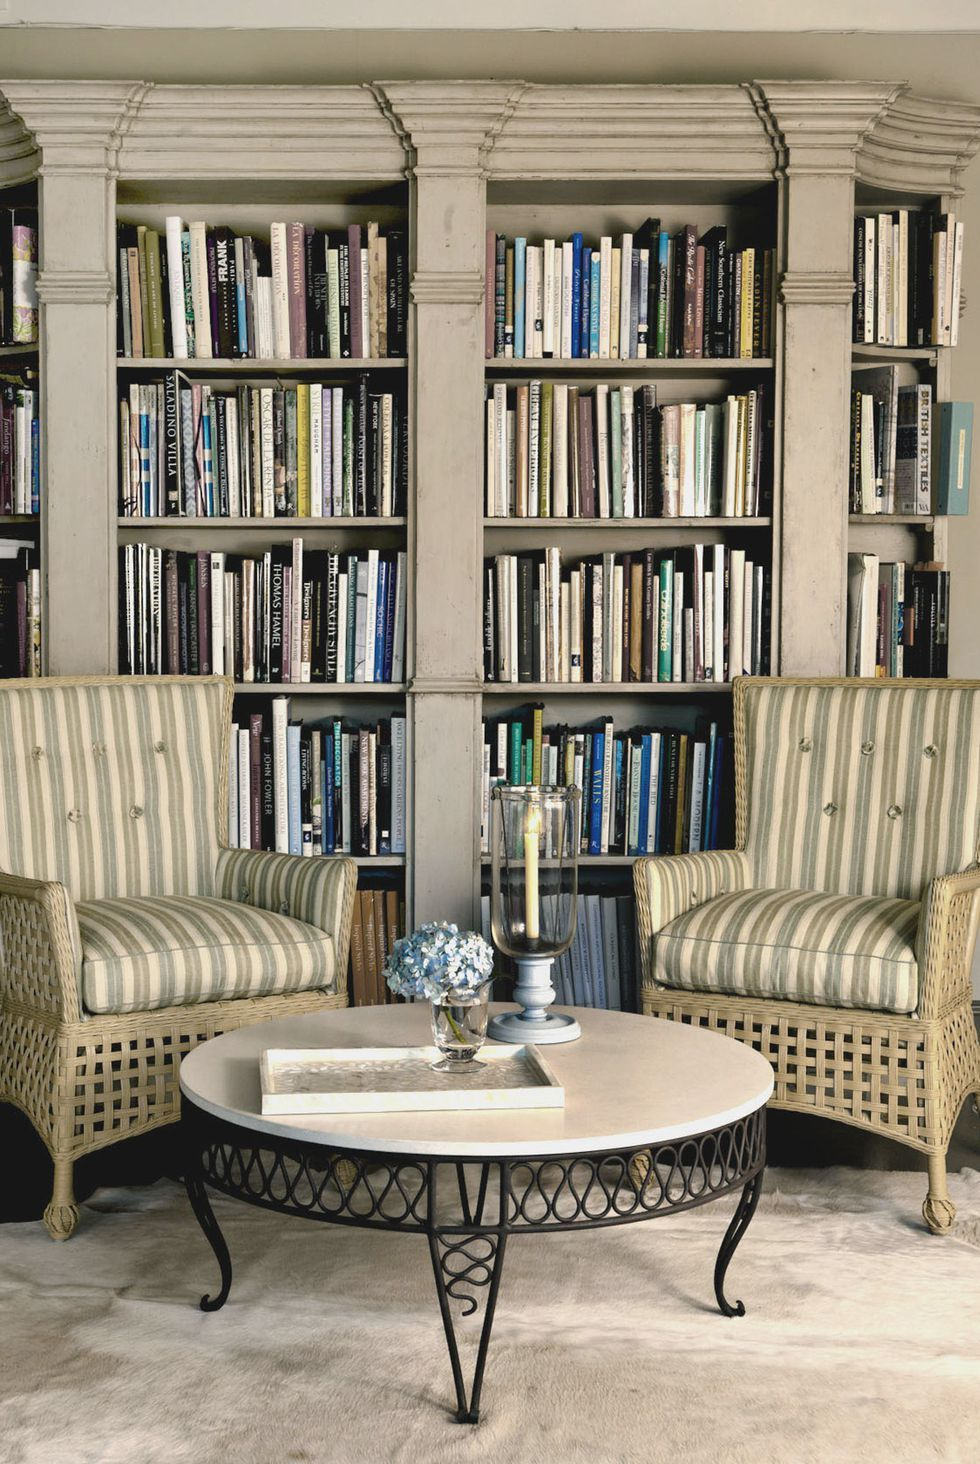 Living Room Library Design Ideas: 45 Examples That Prove Your Books Deserve Attention